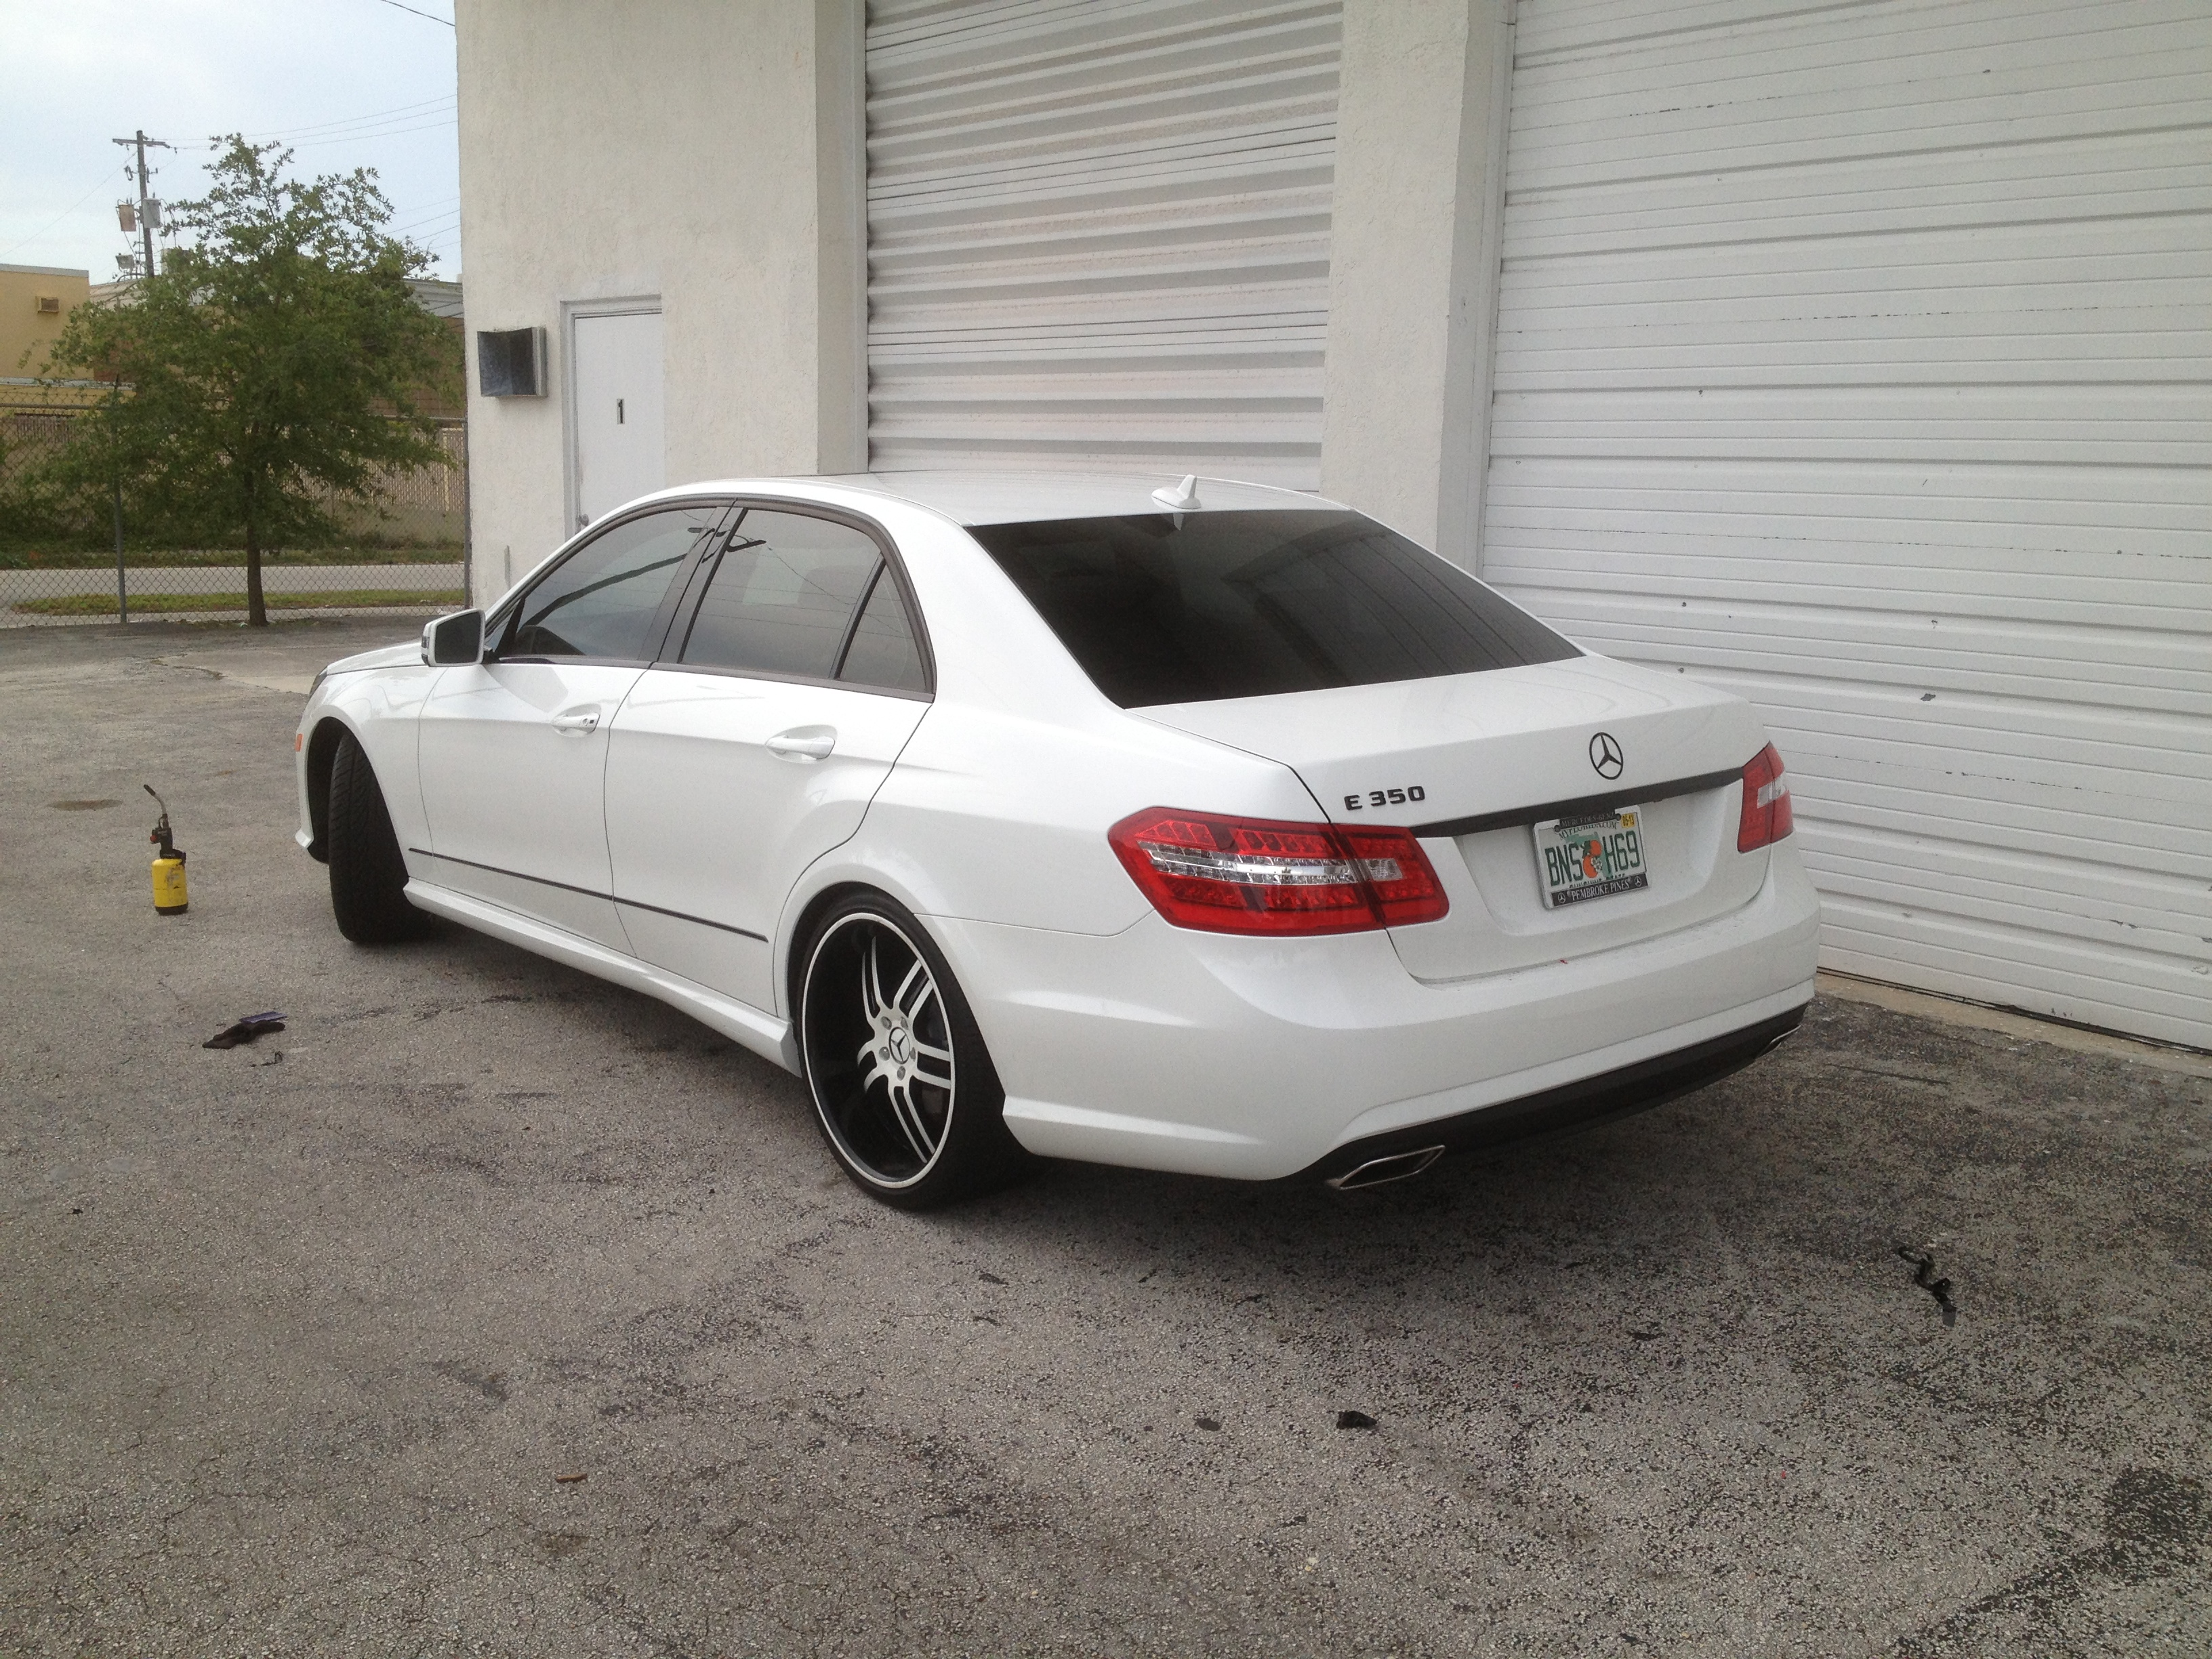 2015 Mercedes E350 >> Intack Signs and Wraps » Mercedes Benz E350 Chrome Delete and Gloss Black Roof Wrap